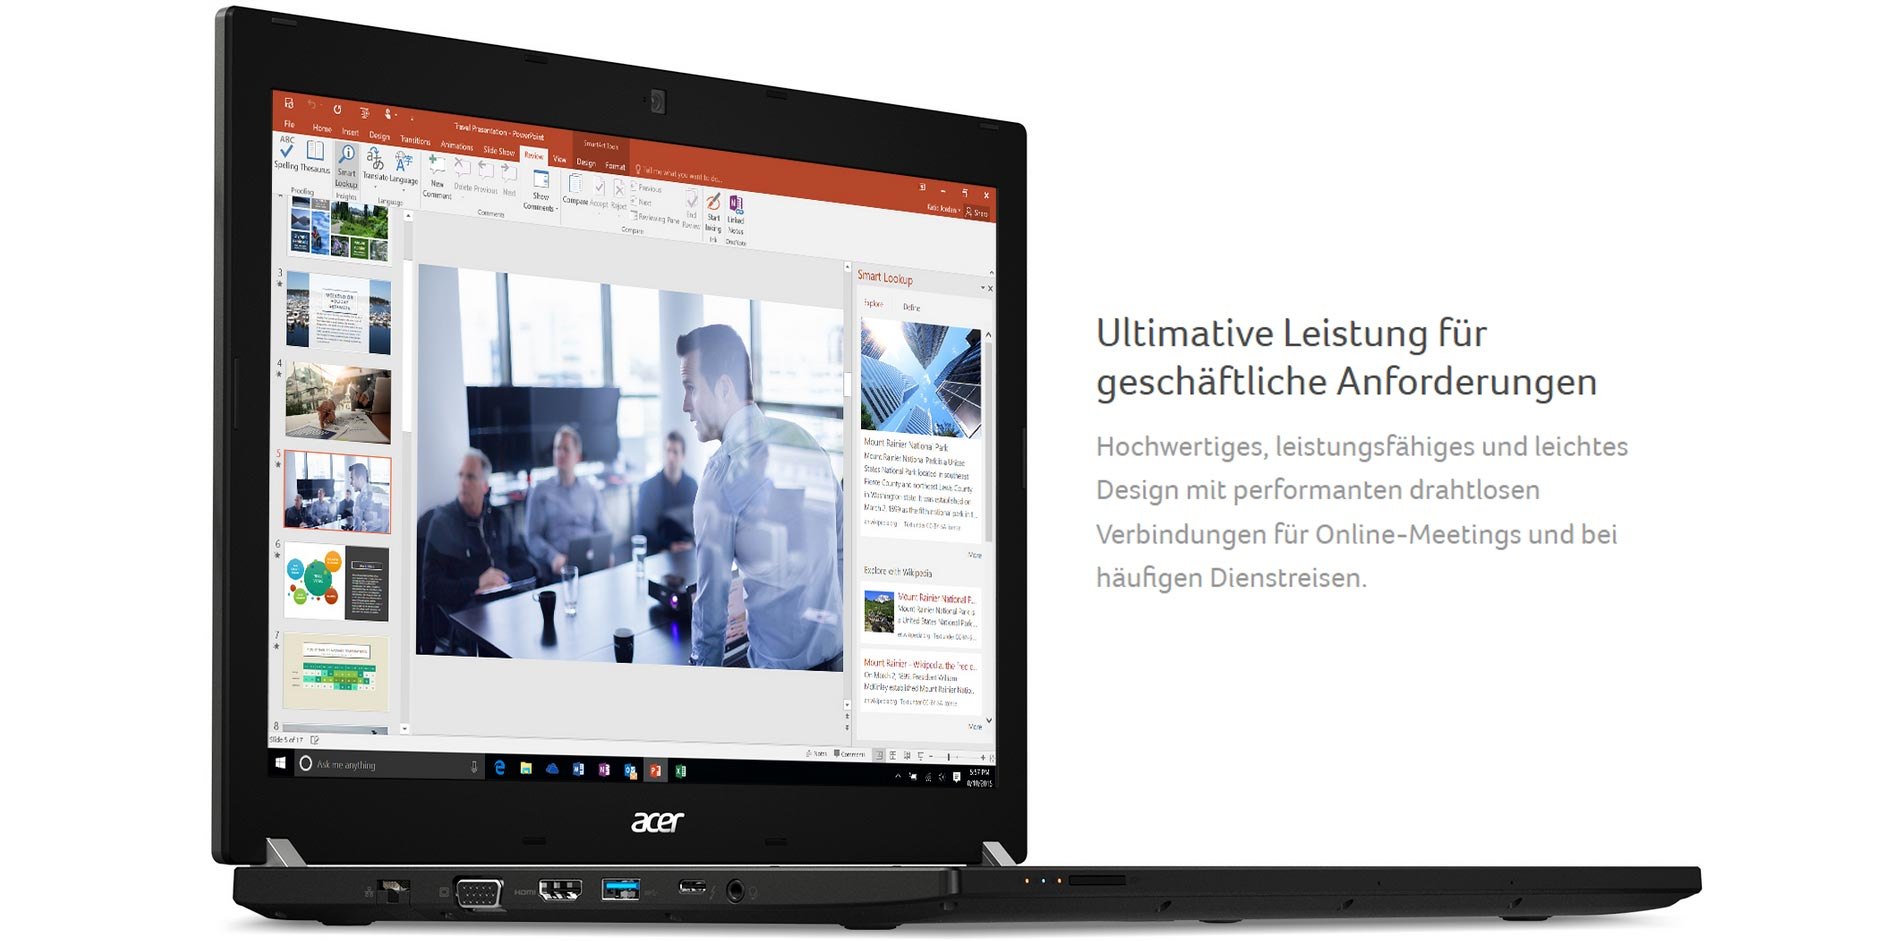 Acer TravelMate P6 Business-Notebook   Wensauer Com-Systeme GmbH